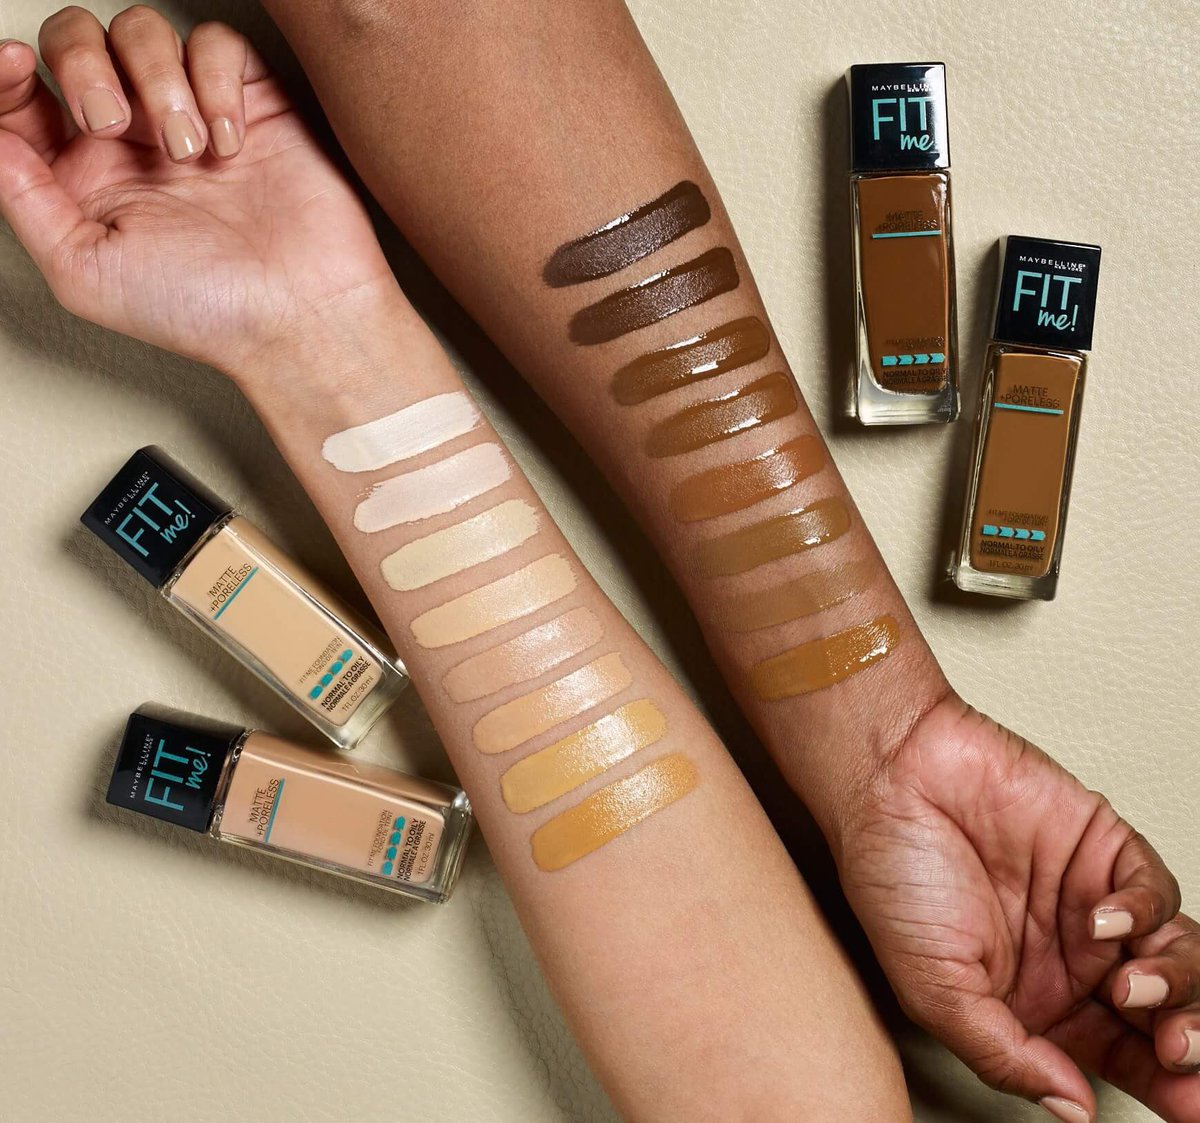 We launched 16 NEW shades of our #FitMeFoundation! 👊🏻👊🏼👊🏽👊🏾👊🏿 Available online at all Maybelline retailers and in-store only at @Walmart.